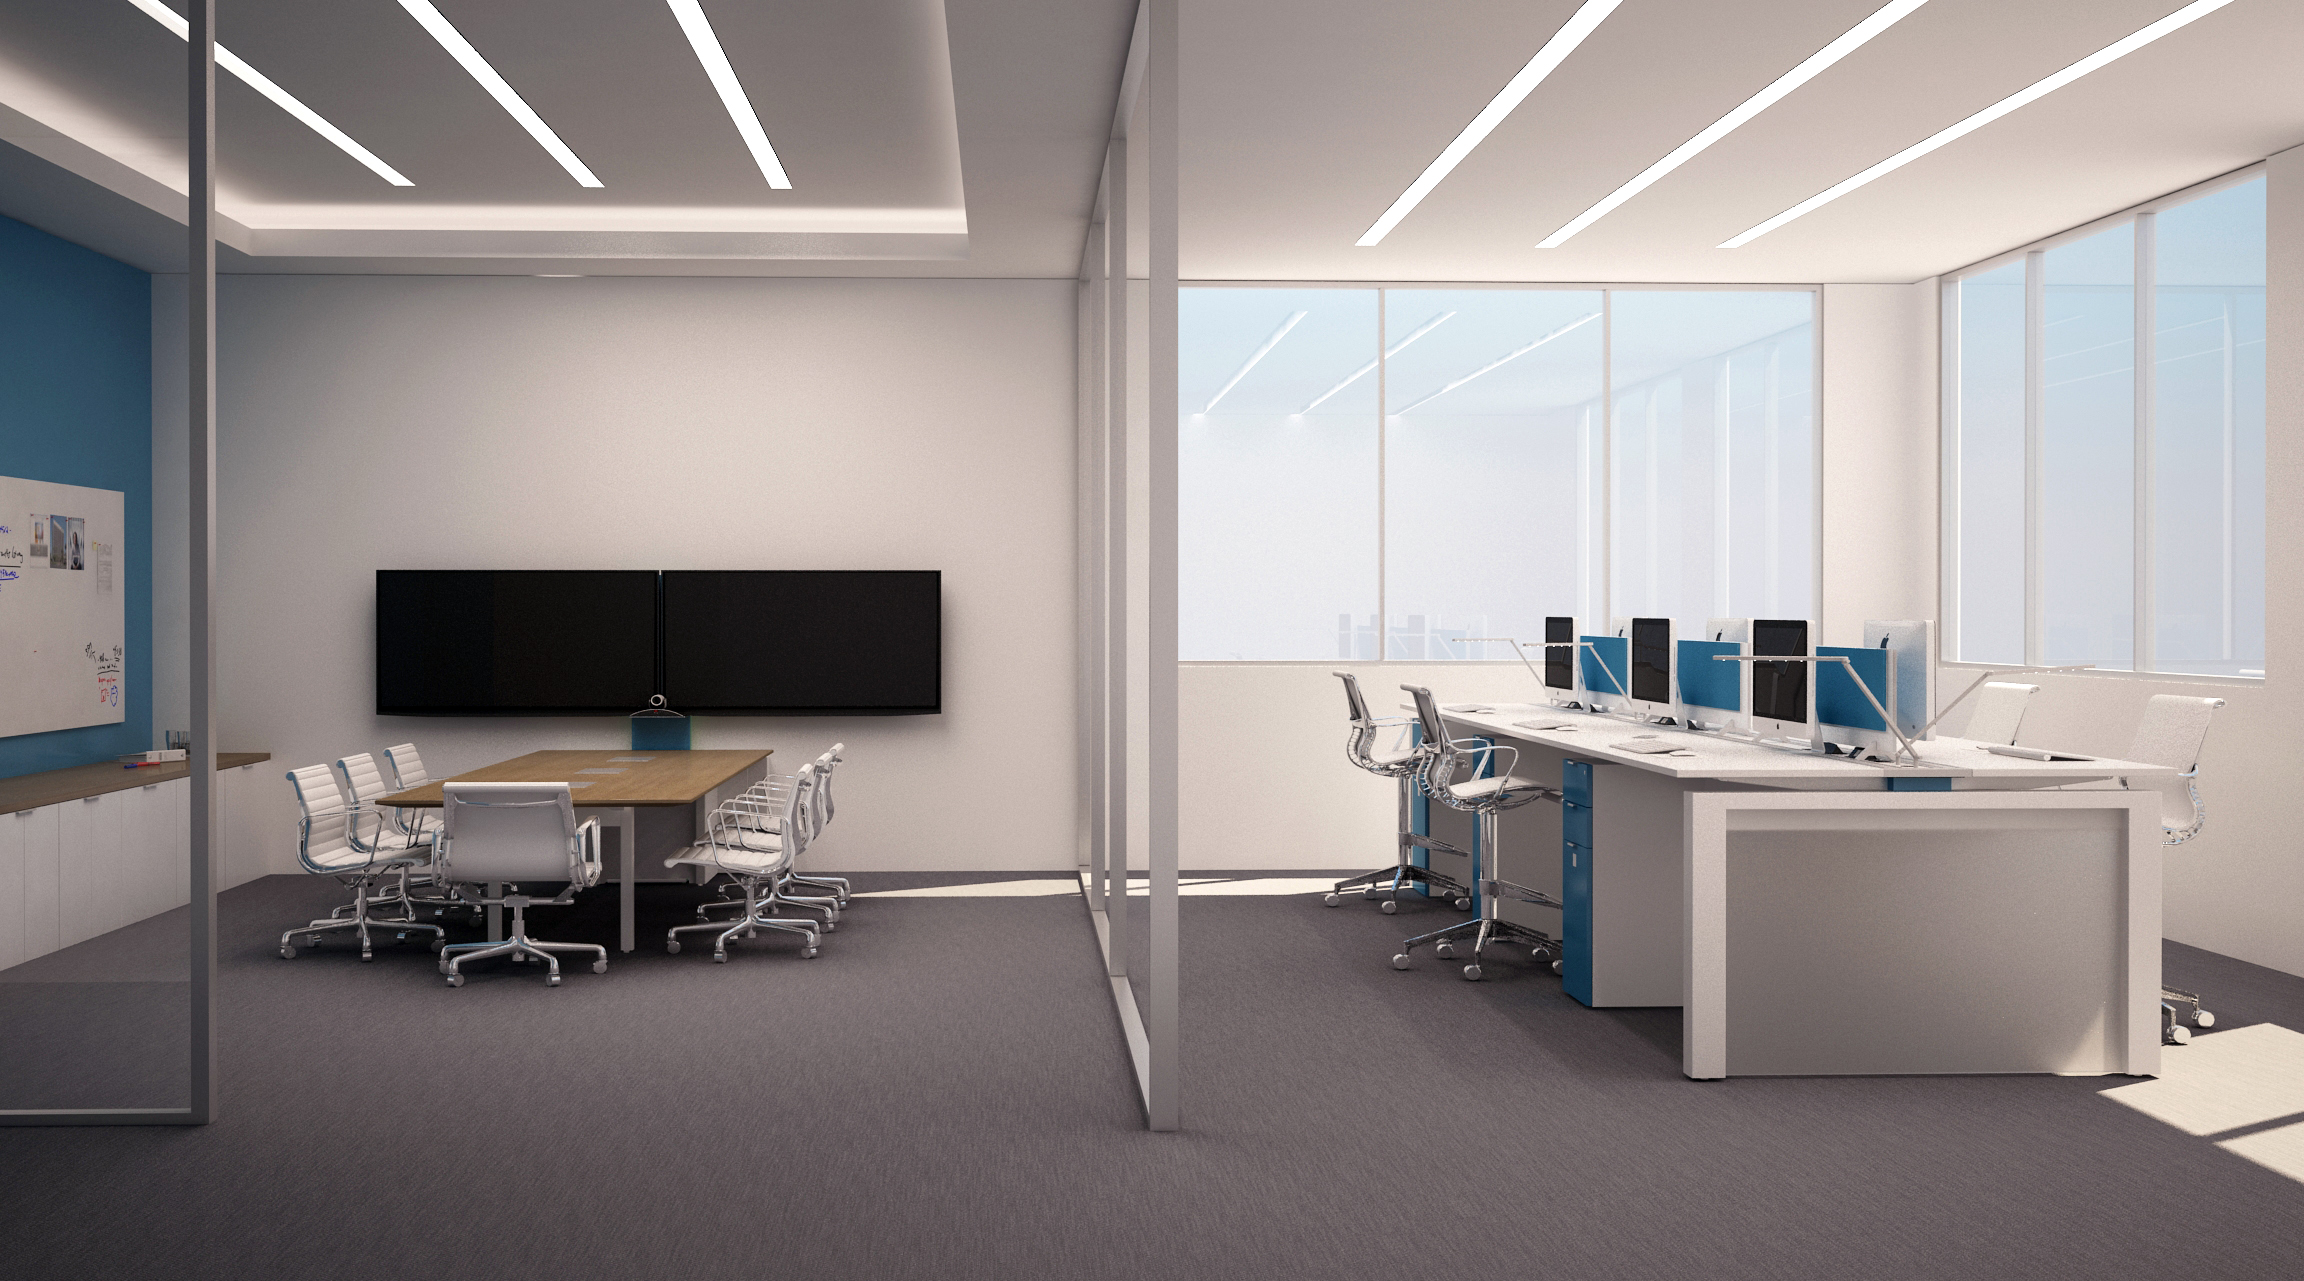 Innovant To Present Two Breakthrough Office Furniture Products At NeoCon  2014